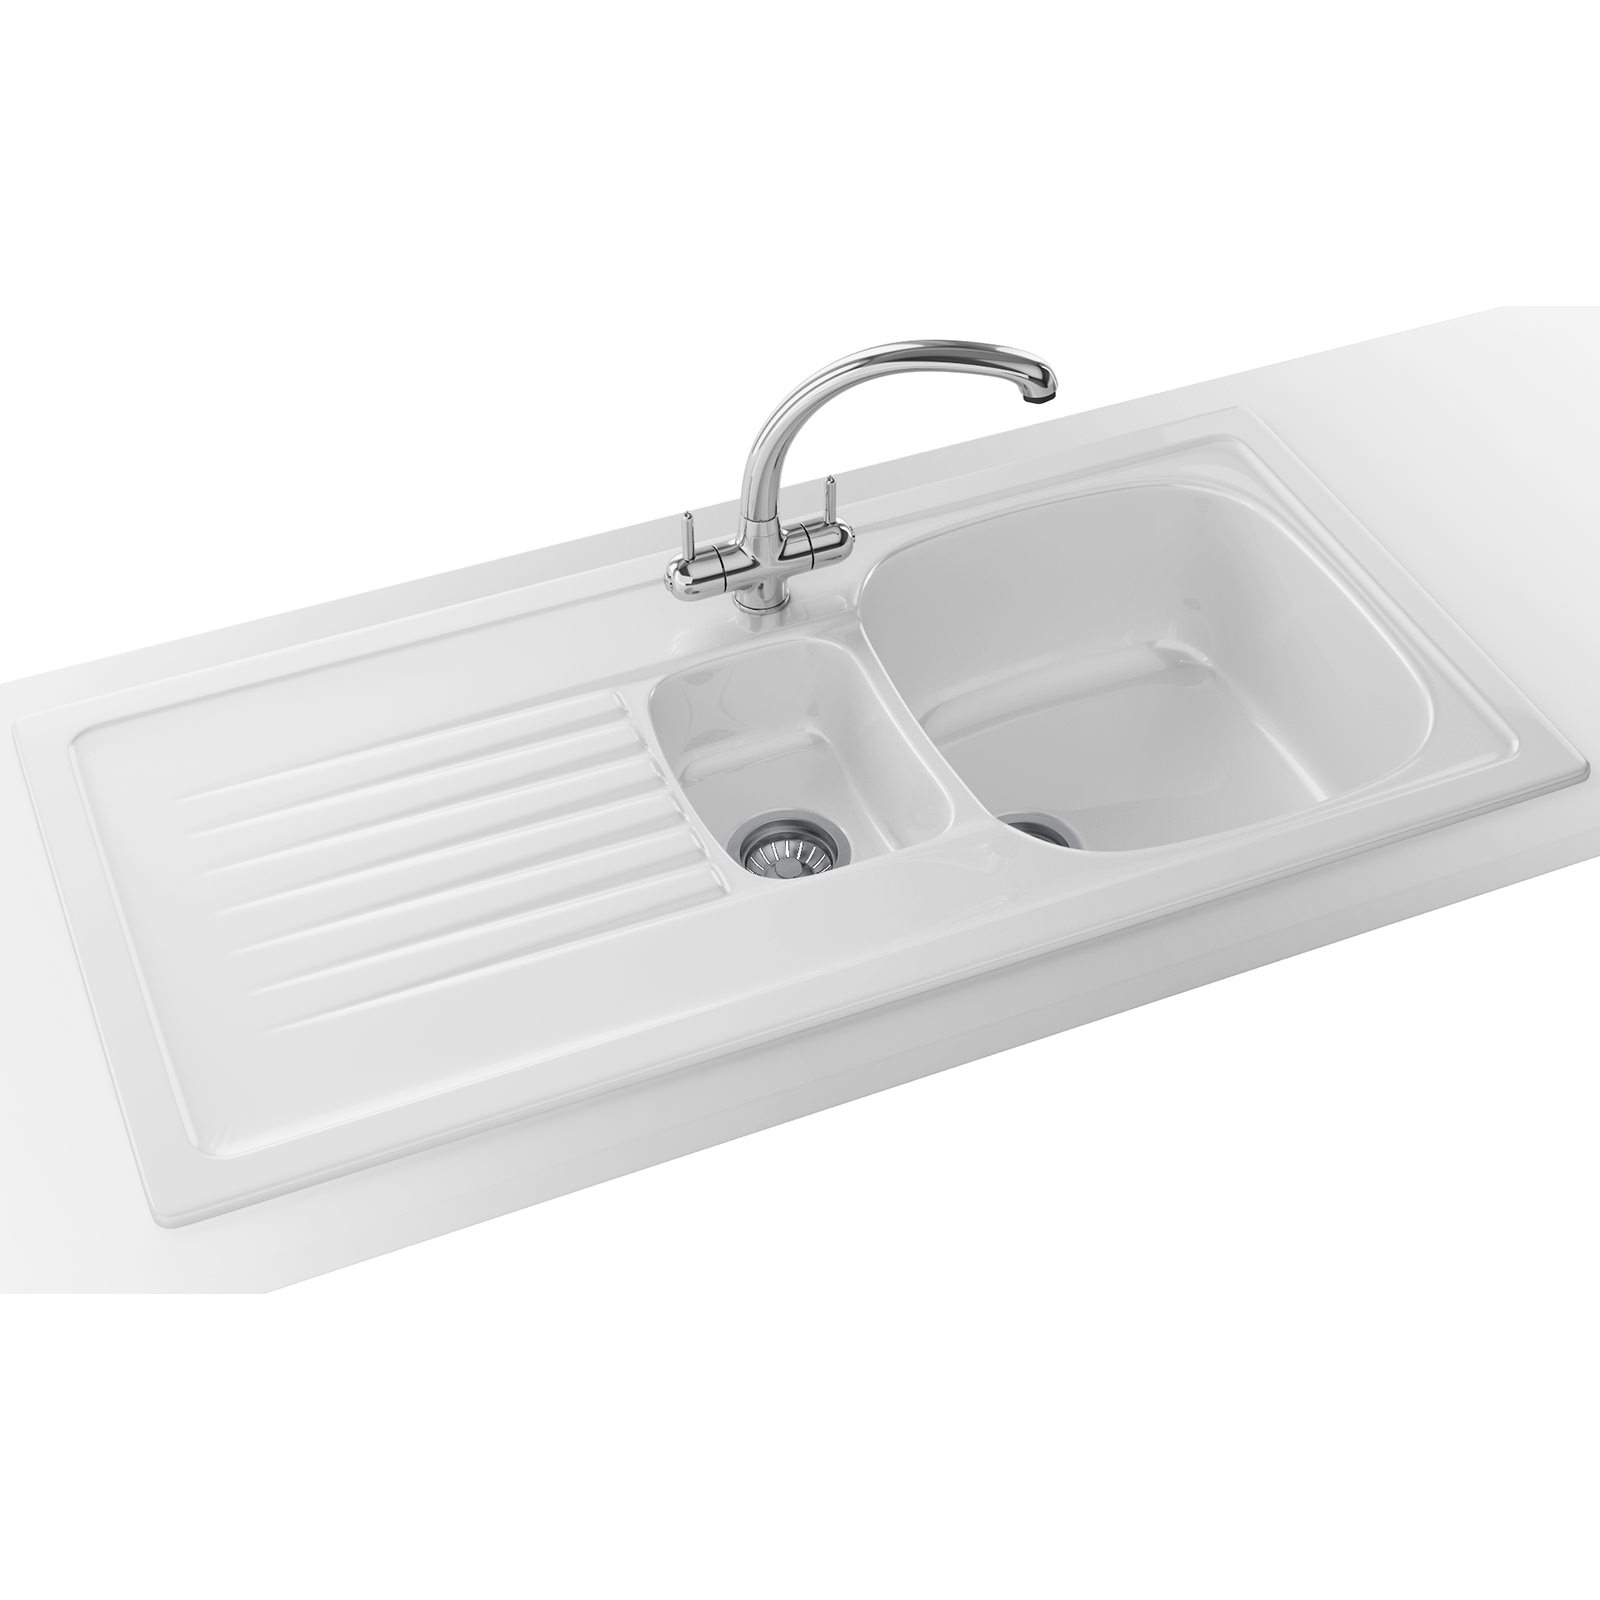 Franke Sinks And Taps : Franke Elba Propack ELK 651 Ceramic White Inset Sink And Tap 124 ...